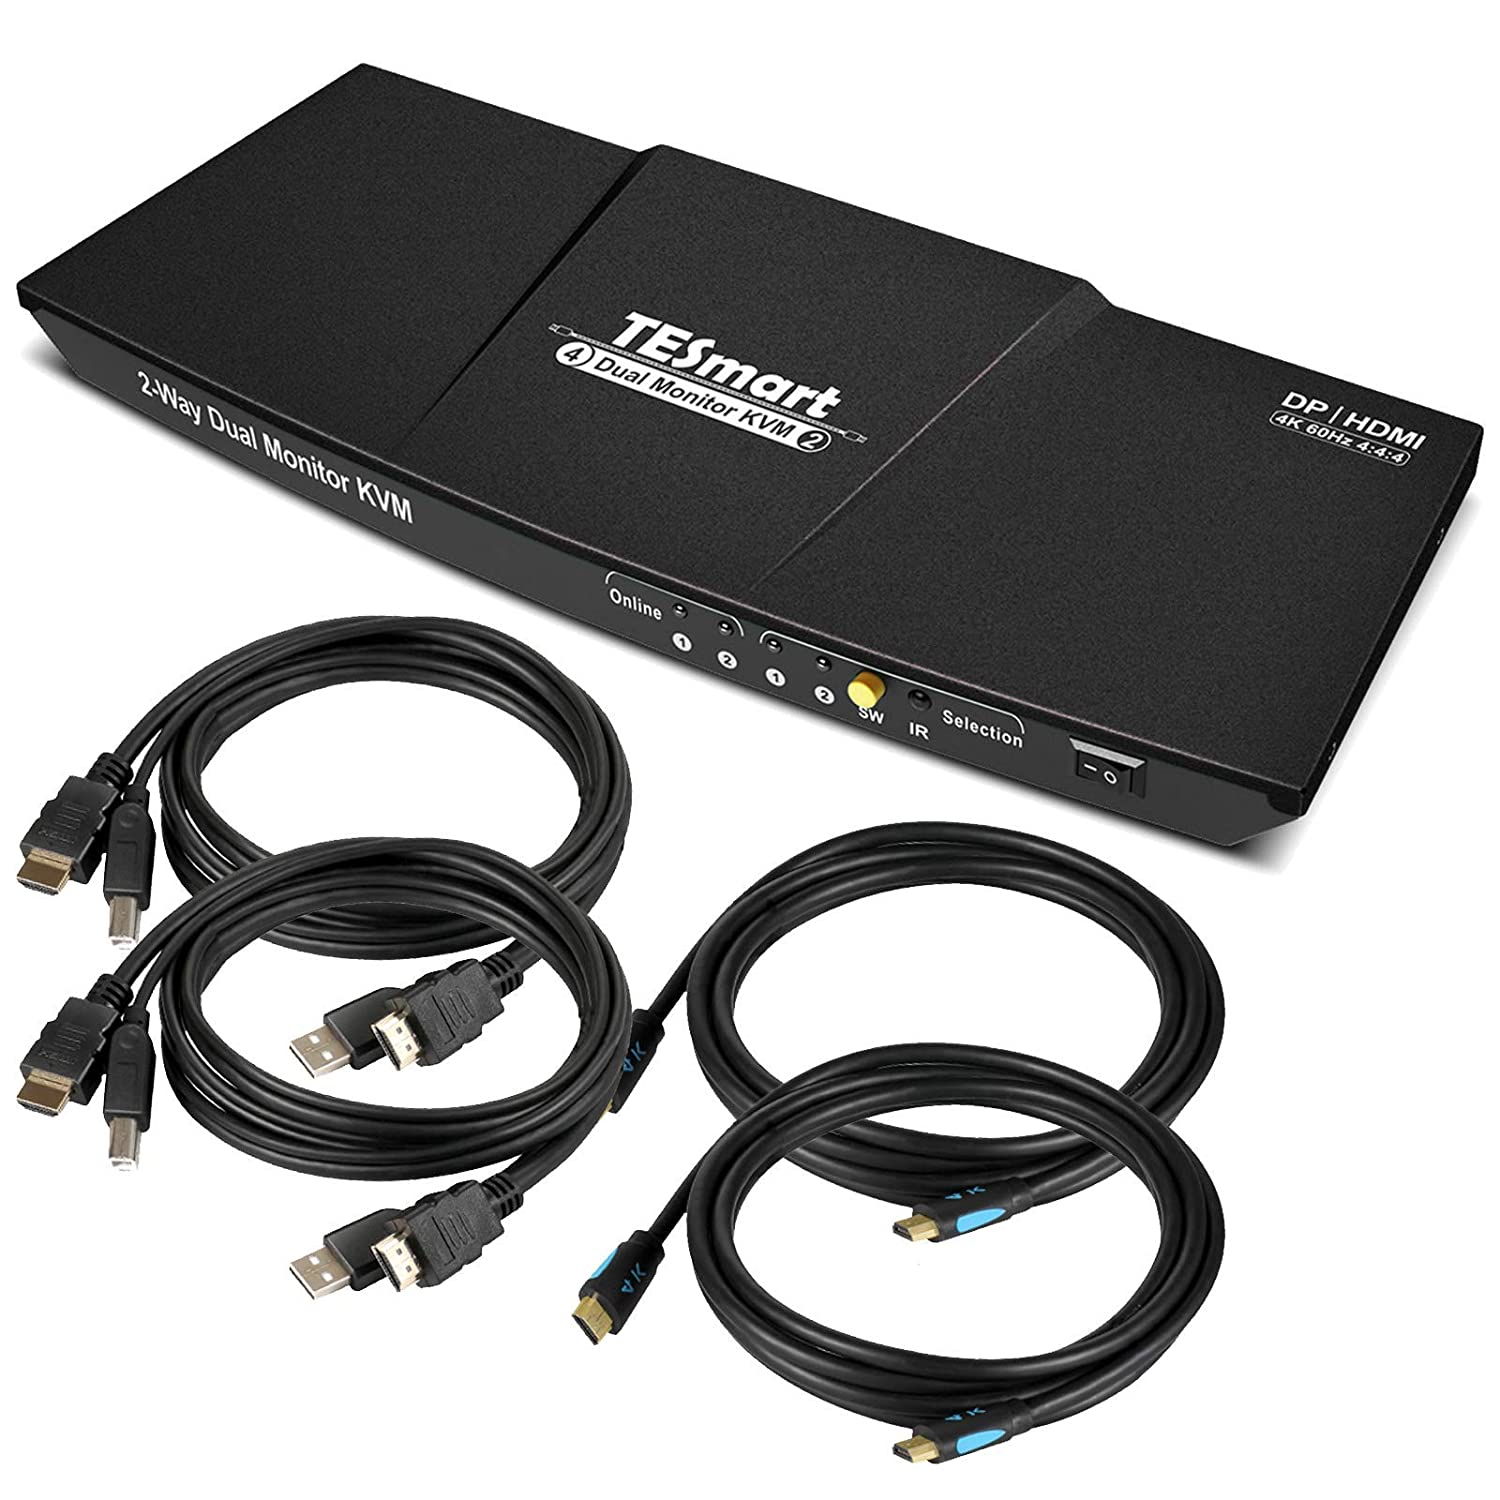 TESmart Dual Monitor 2 inputs 4K@60Hz Ultra HD 2x2 DP KVM Switcher with 2 Pcs 5ft KVM Cables and DP Cables Supports USB 2.0 Devices Control up to 2 DP Port Devices